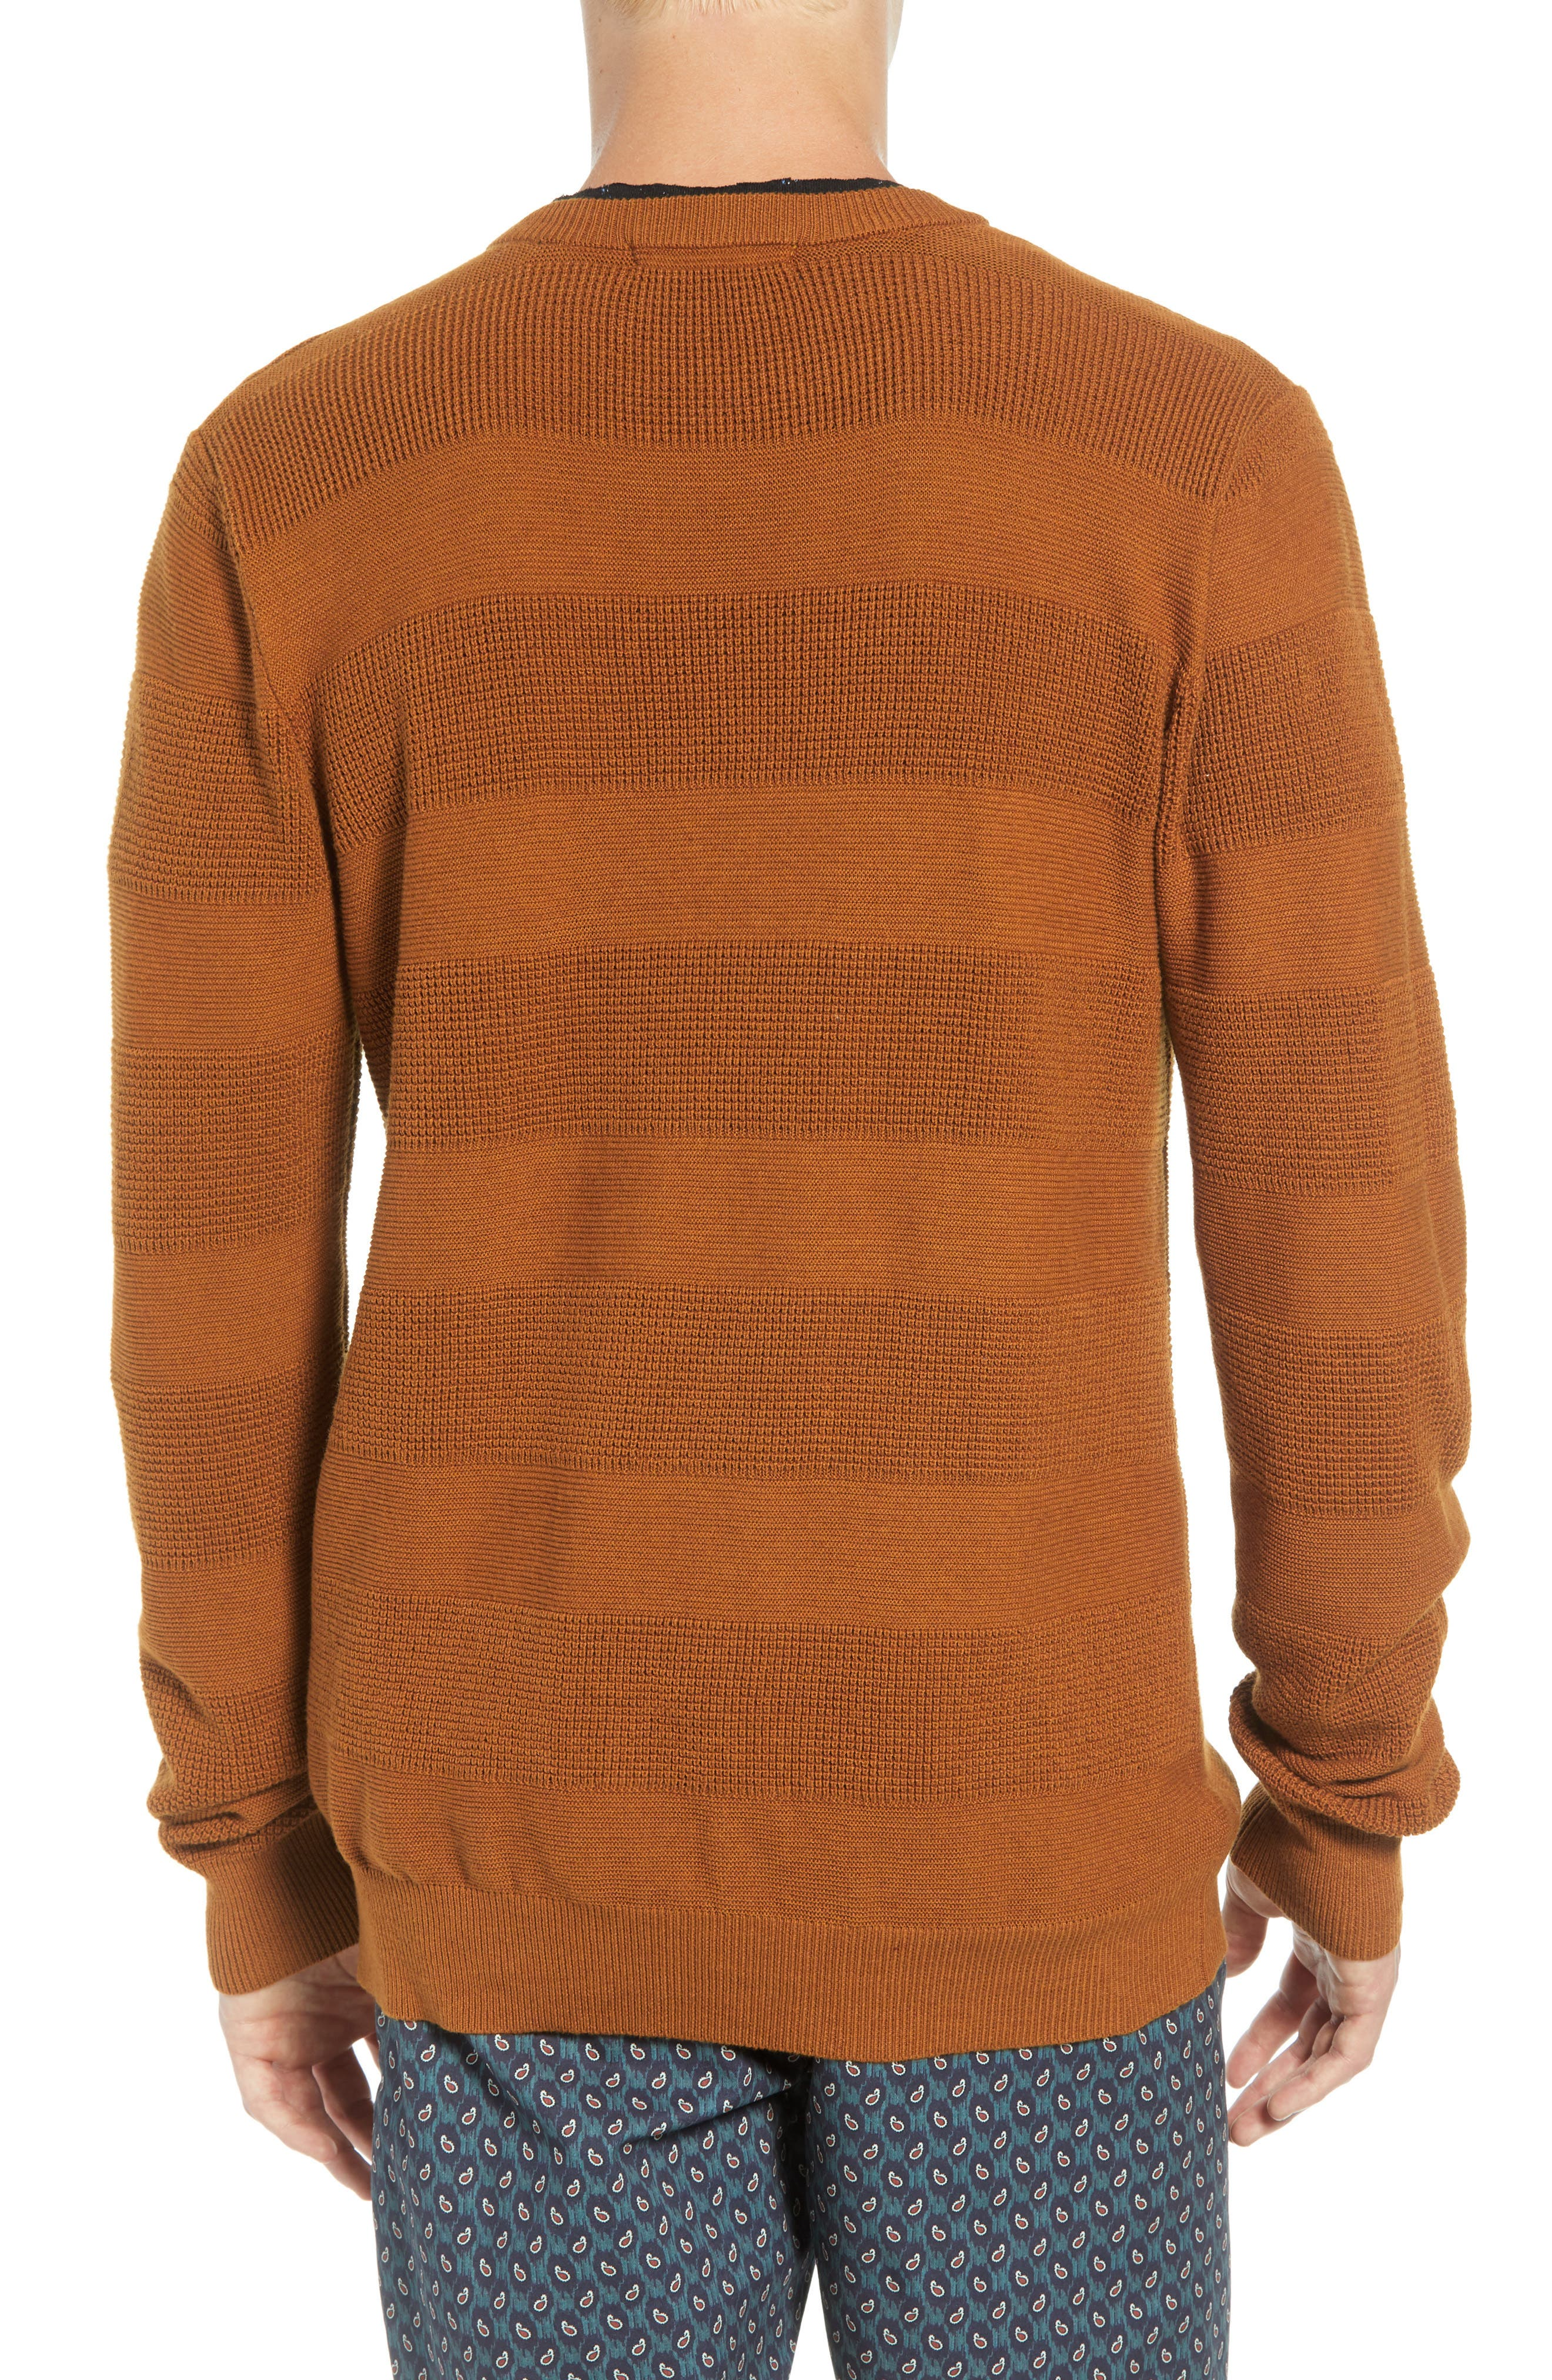 Crewneck Sweater,                             Alternate thumbnail 2, color,                             800